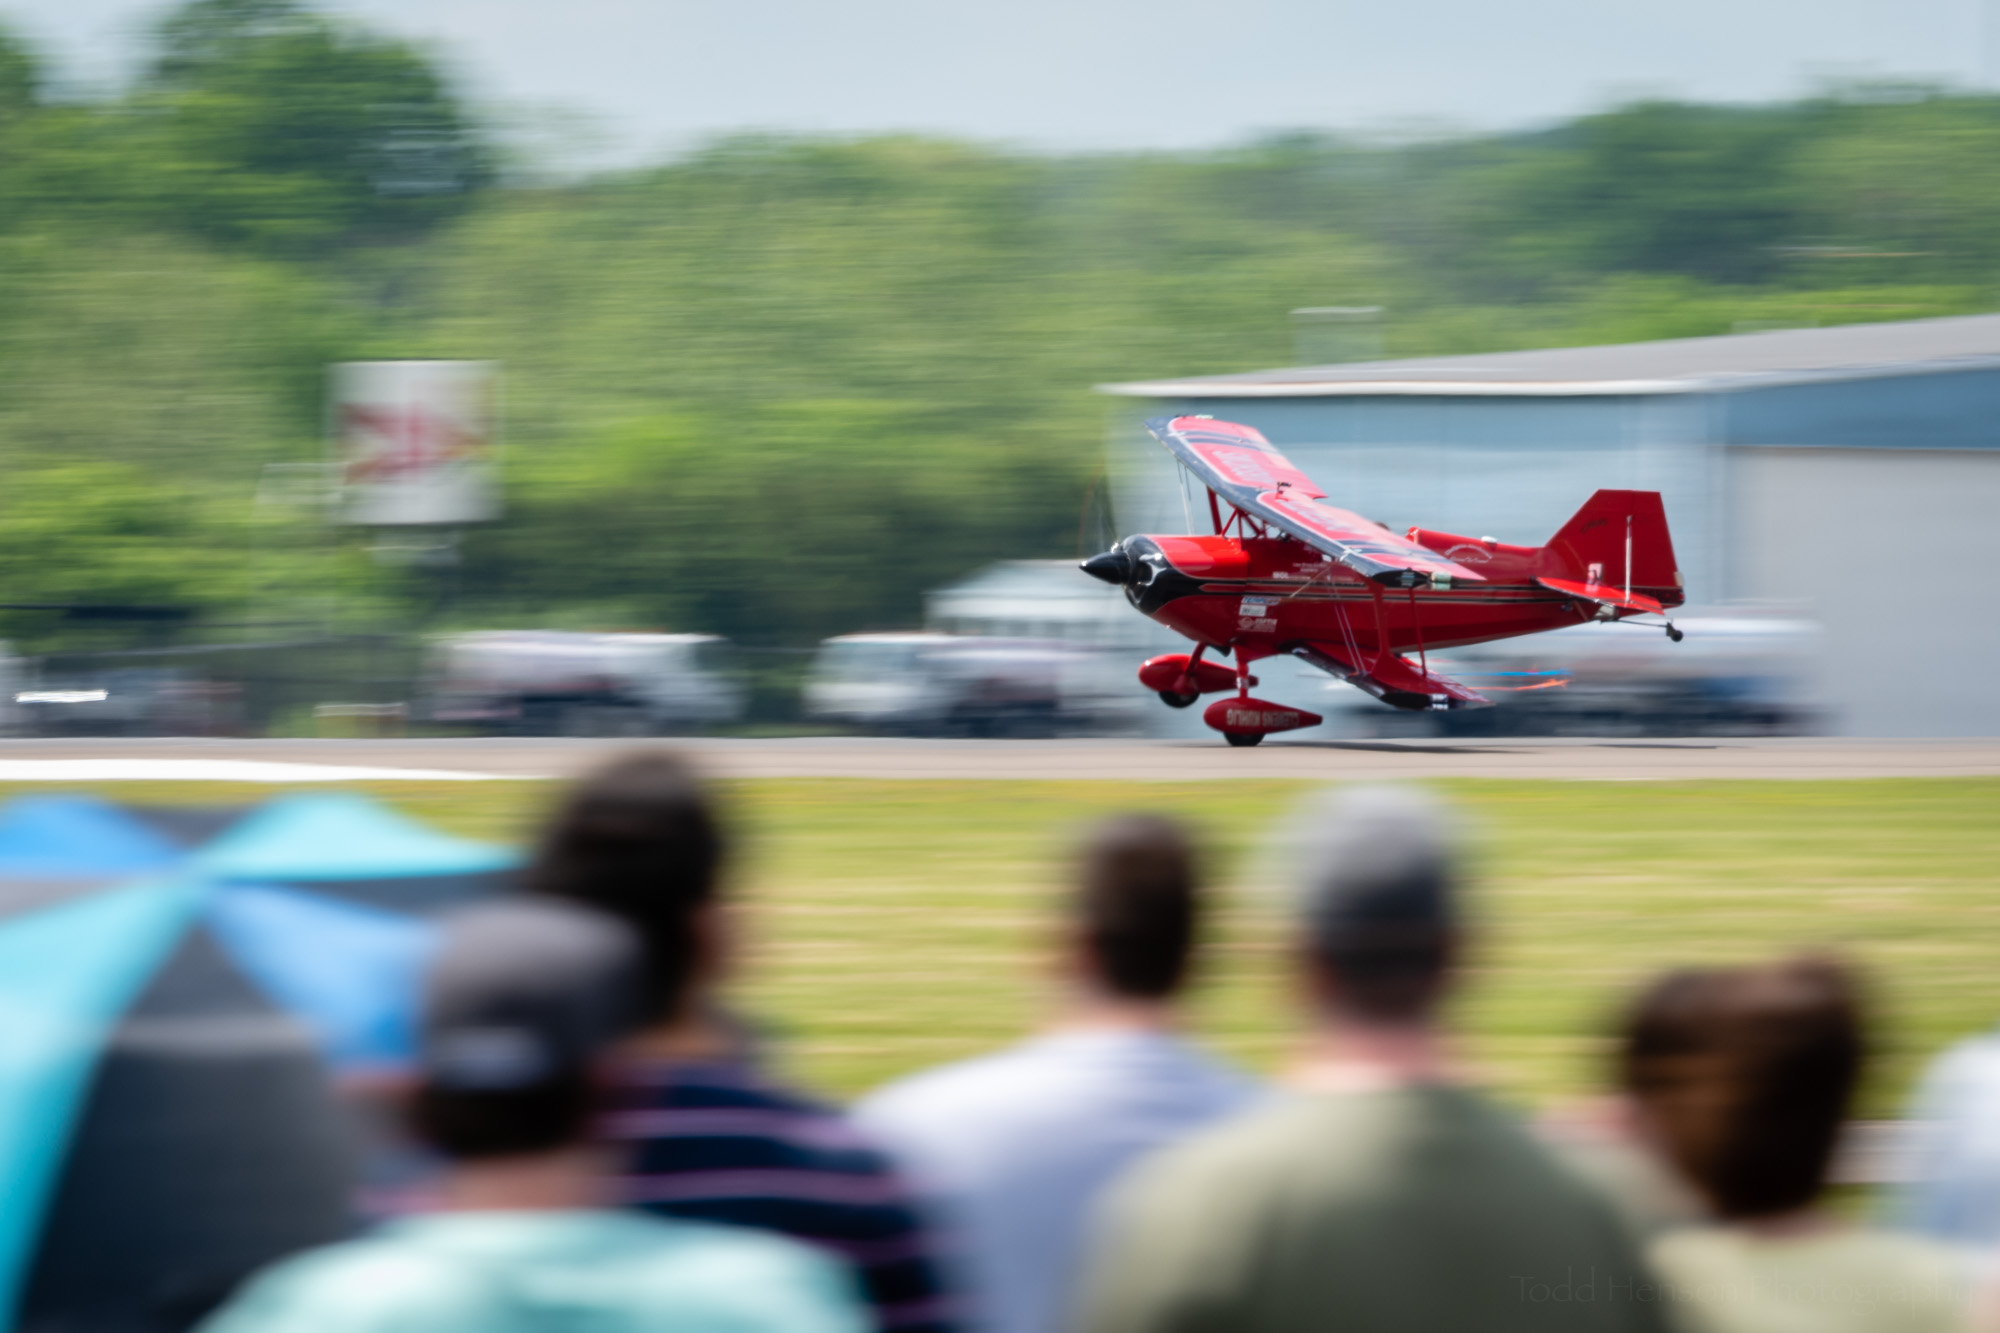 Cheff Pitts taking his Pitts S1S down for a 1-wheeled landing.